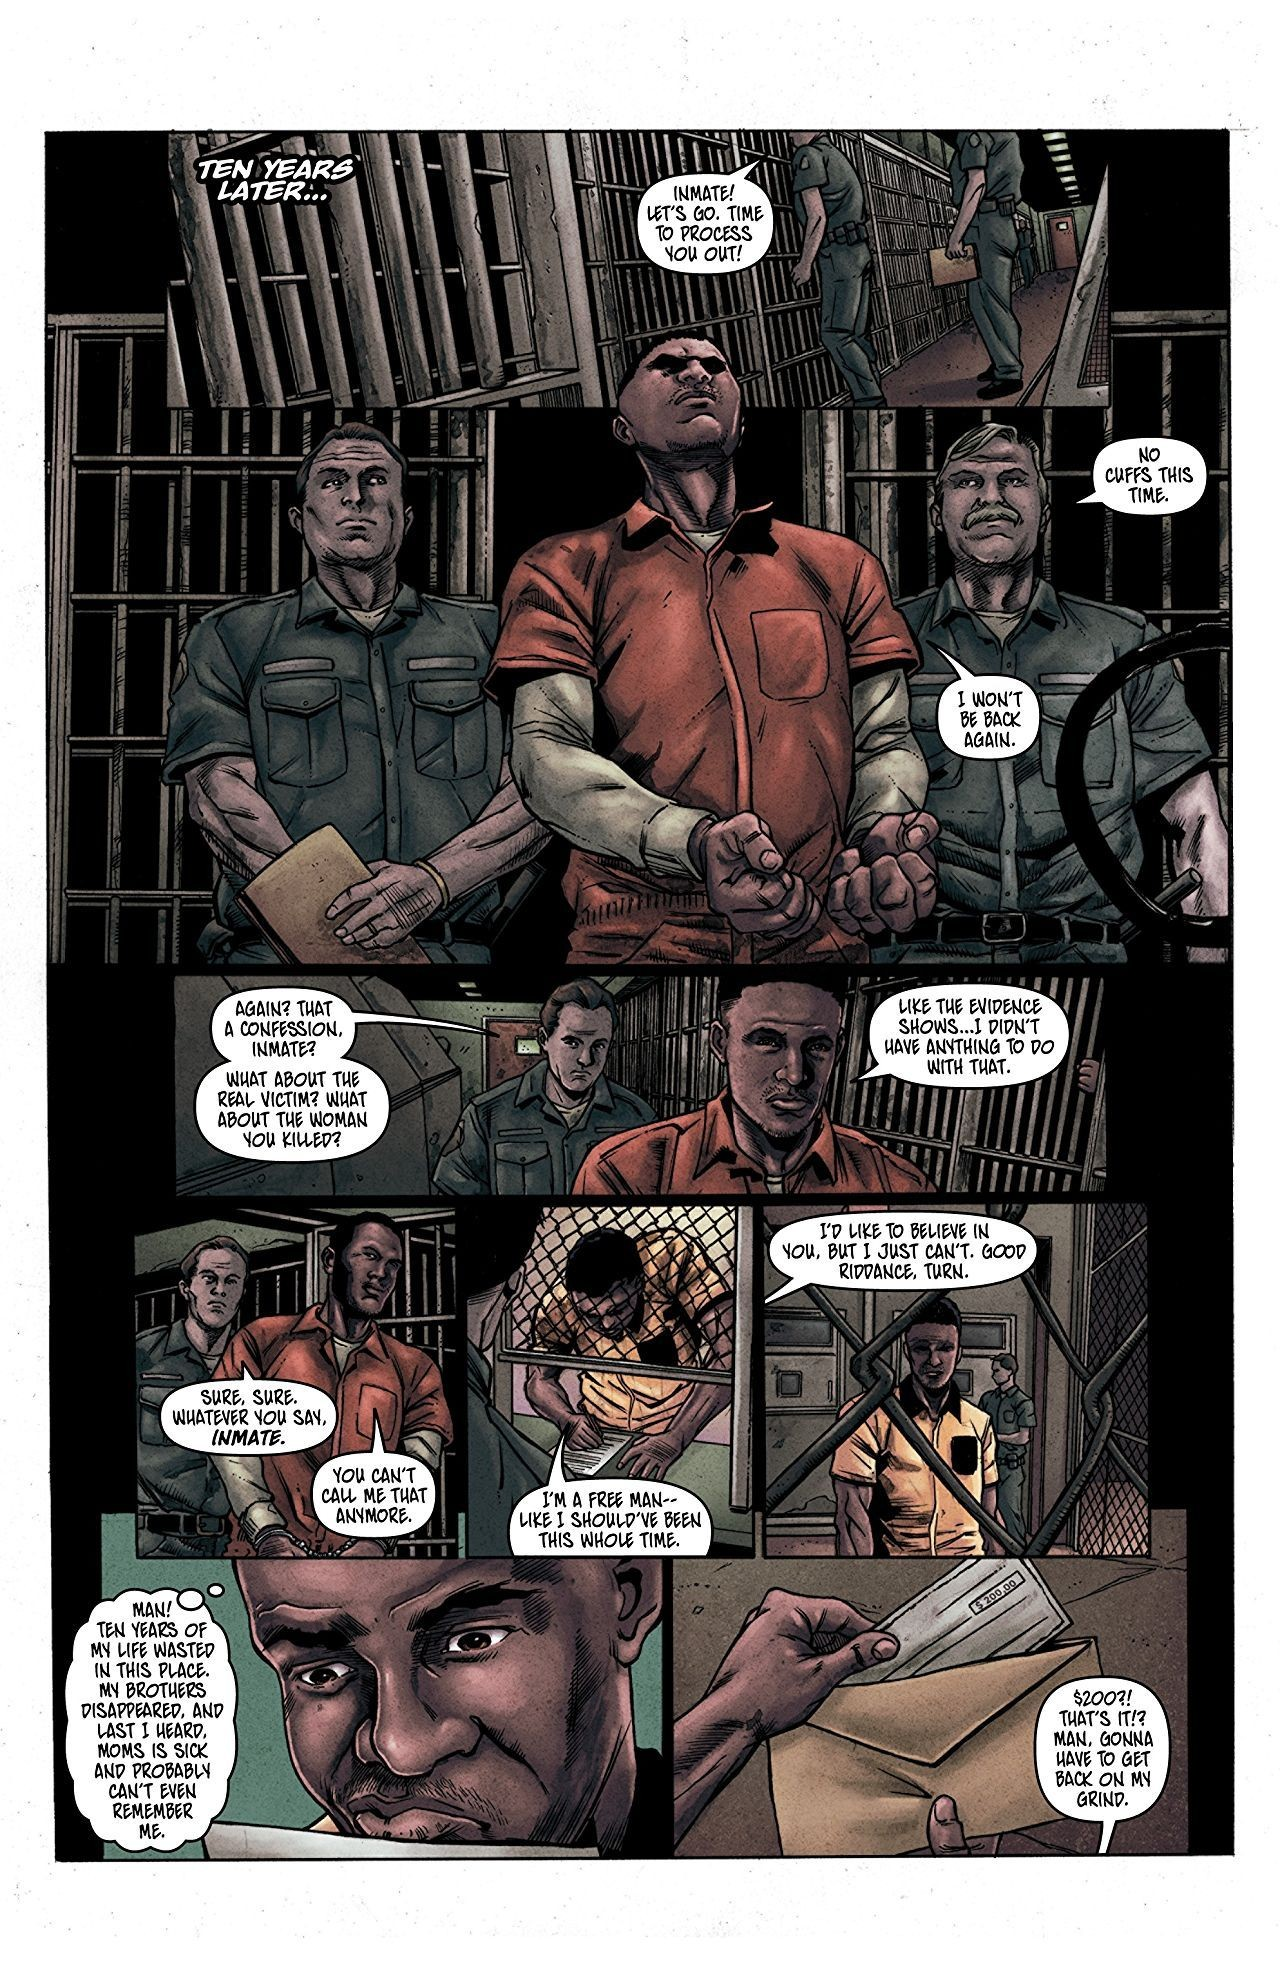 Vindication interior art by Carlos Miko and Dema Jr.